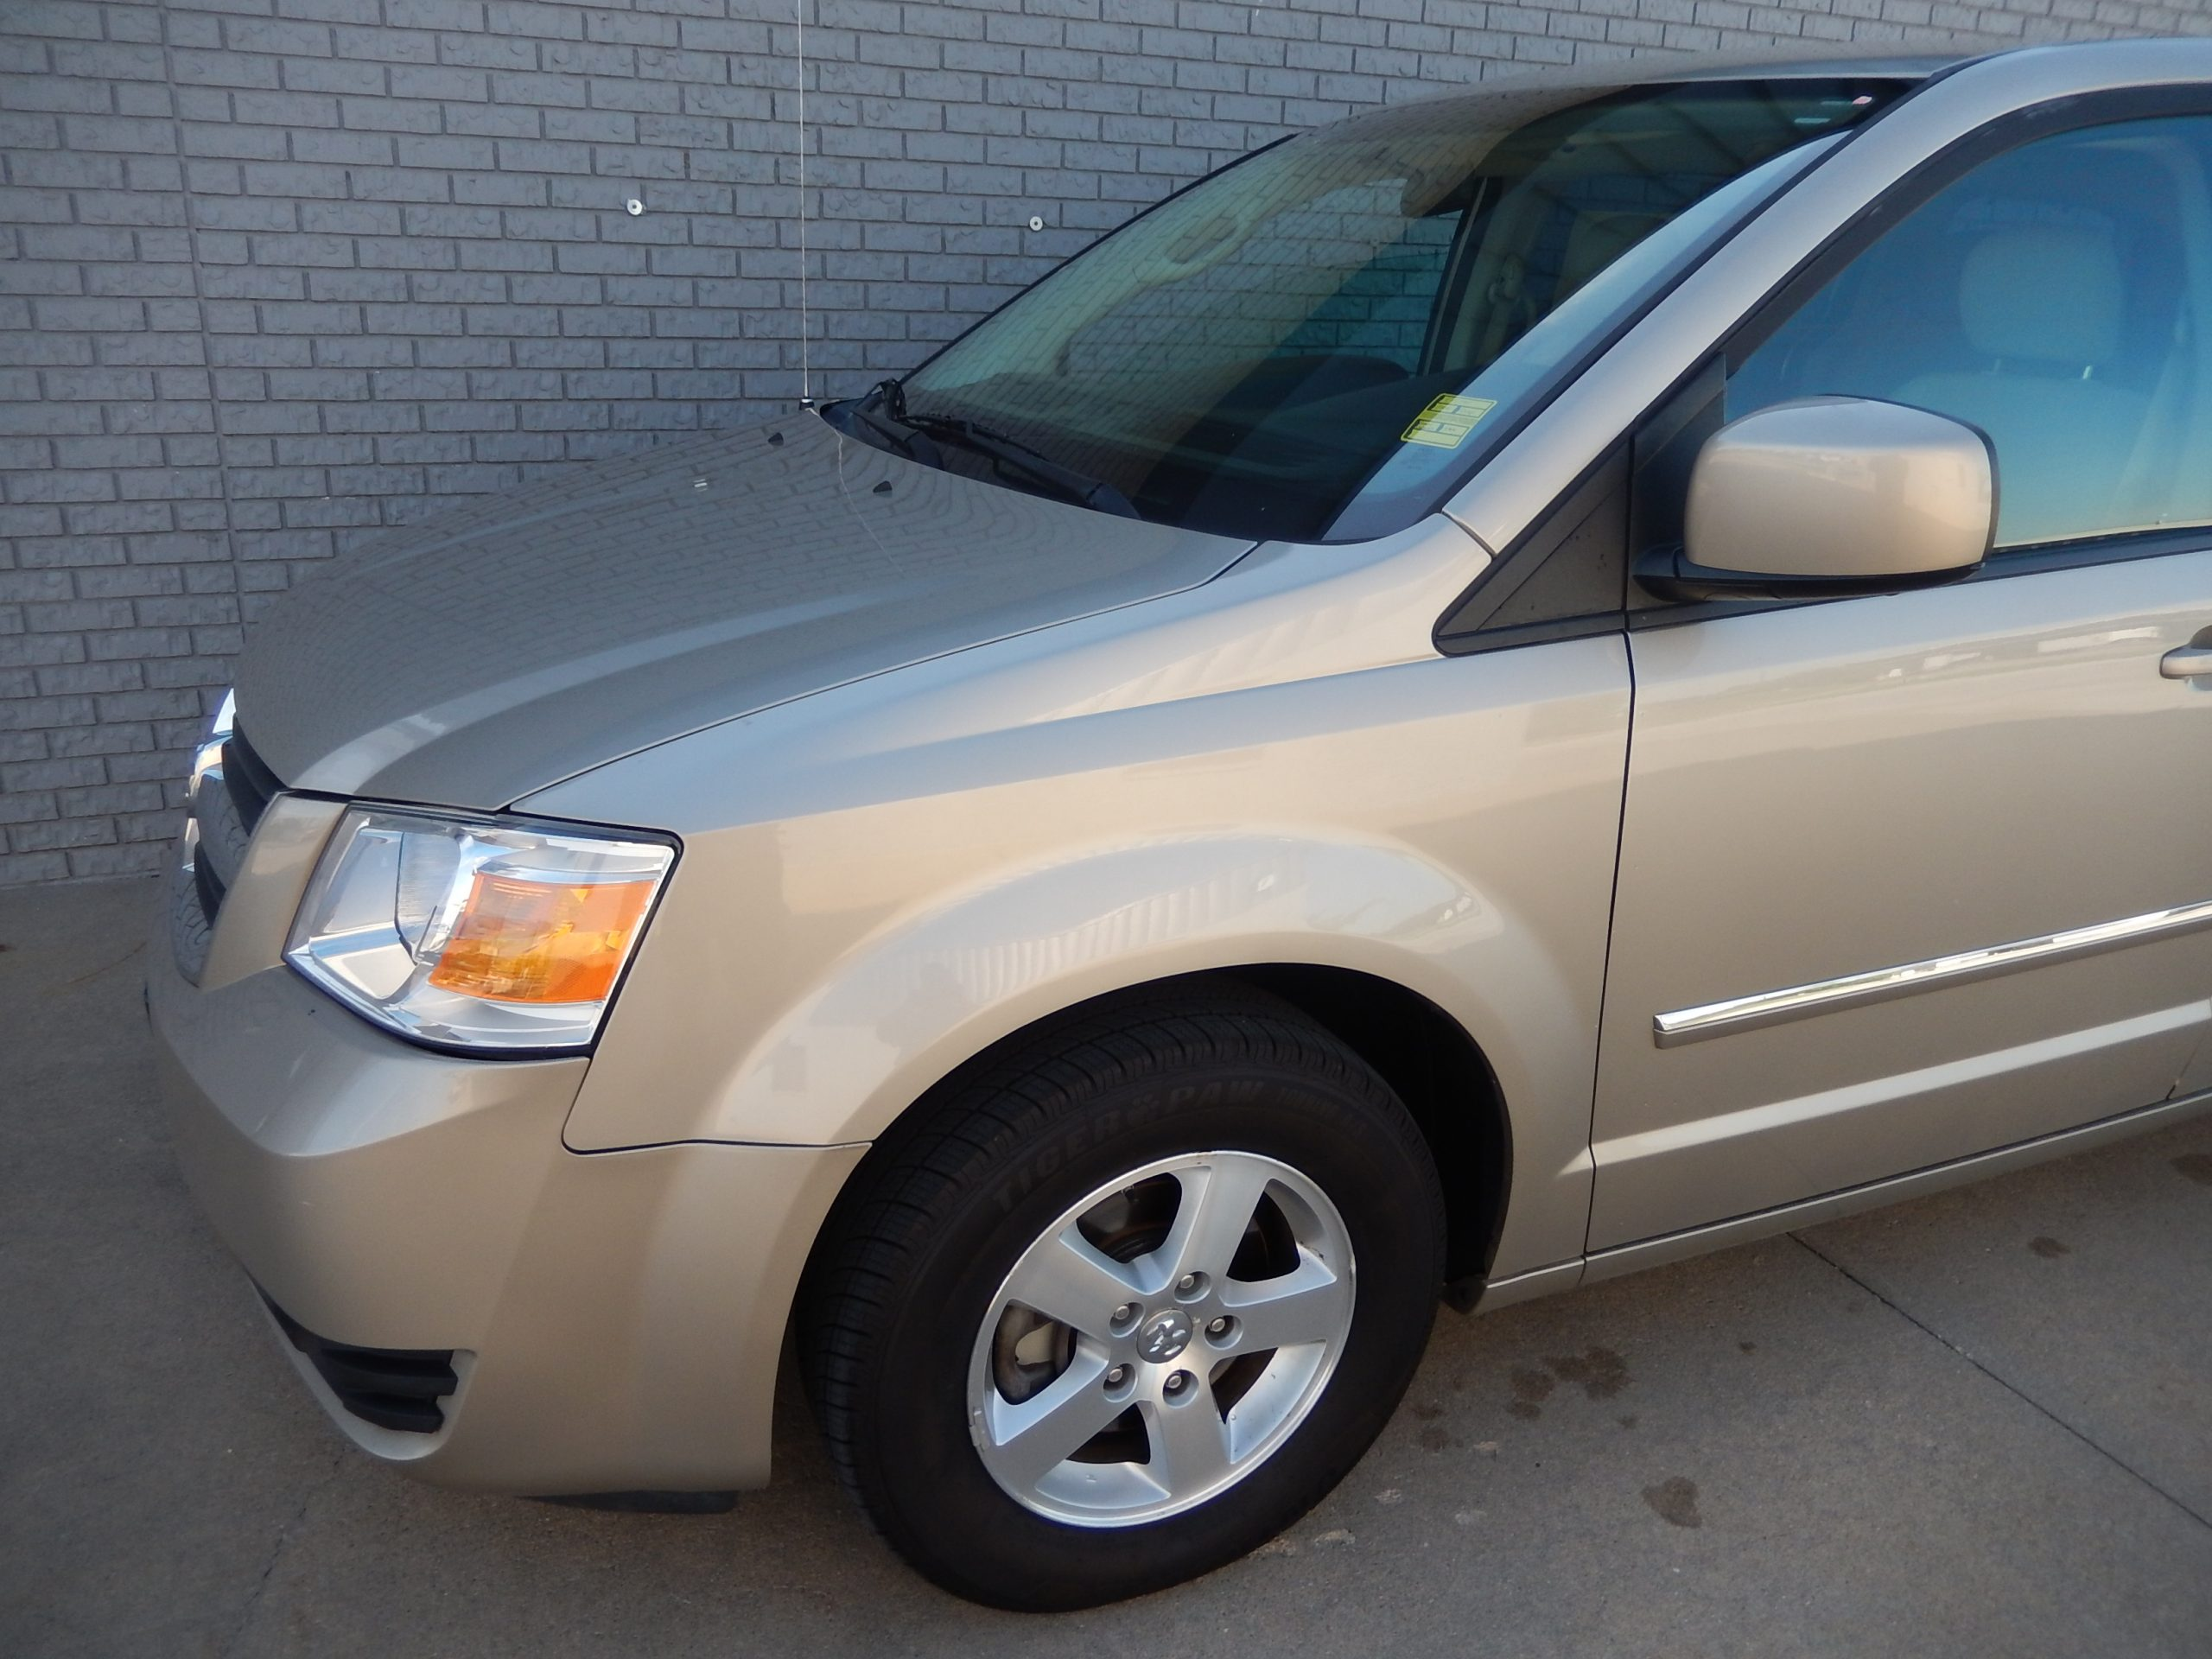 Used 2008 Dodge Grand Caravan SXT Minivan for sale in